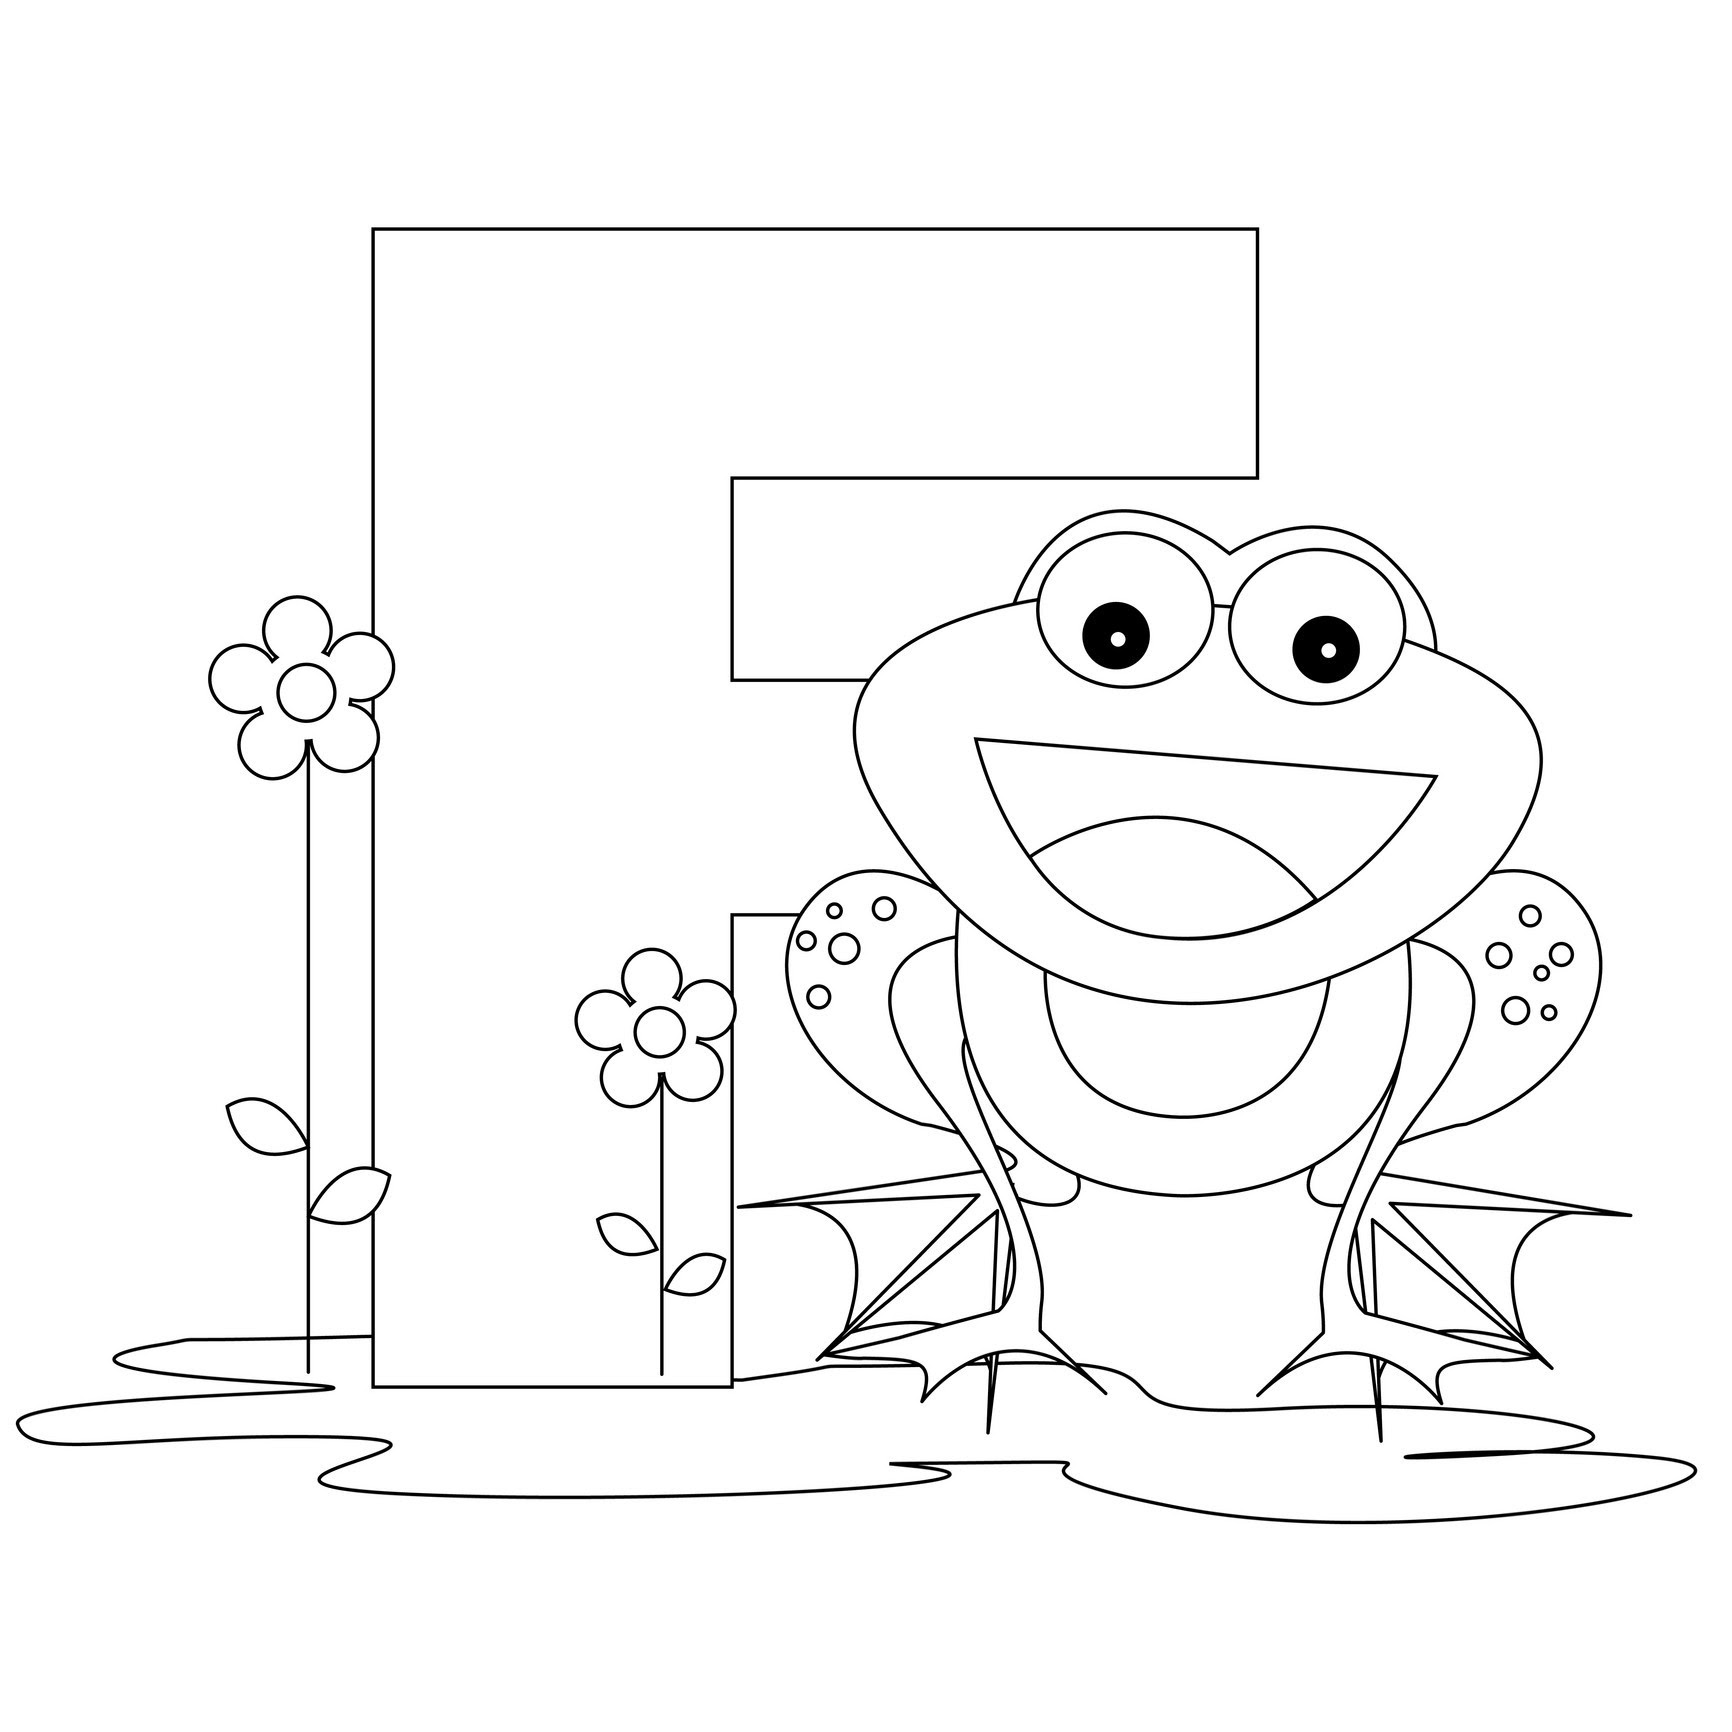 Free Printable Alphabet Coloring Pages for Kids Best Coloring Pages For Kids